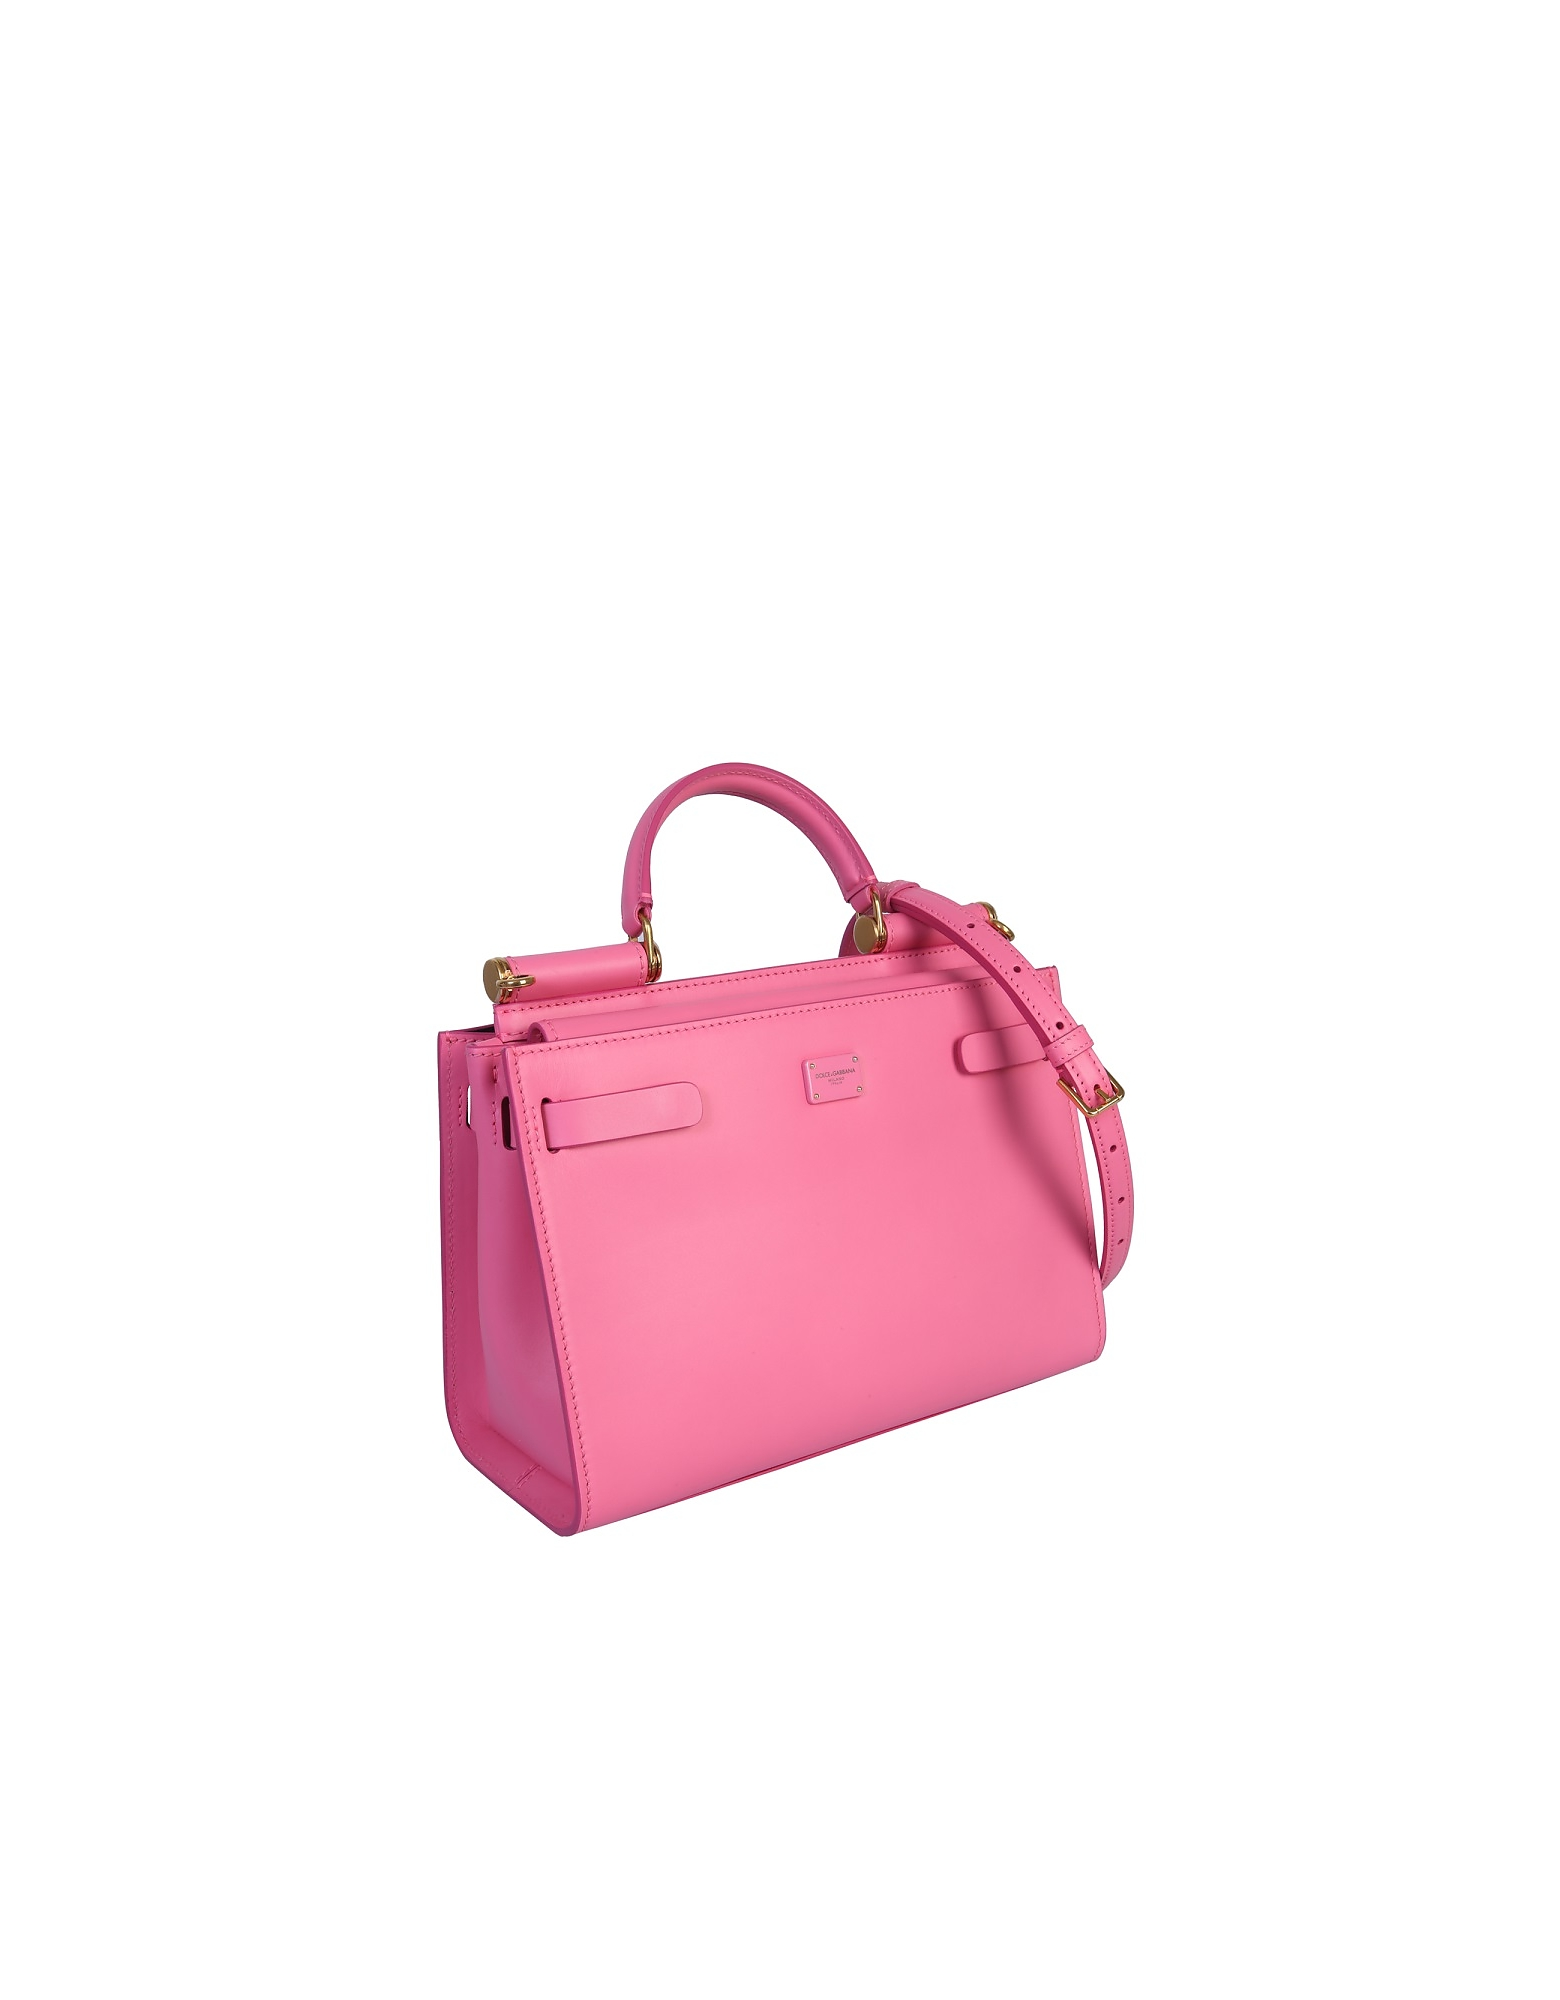 Dolce & Gabbana Small Soft Sicily Bag In Calf Leather In Pink